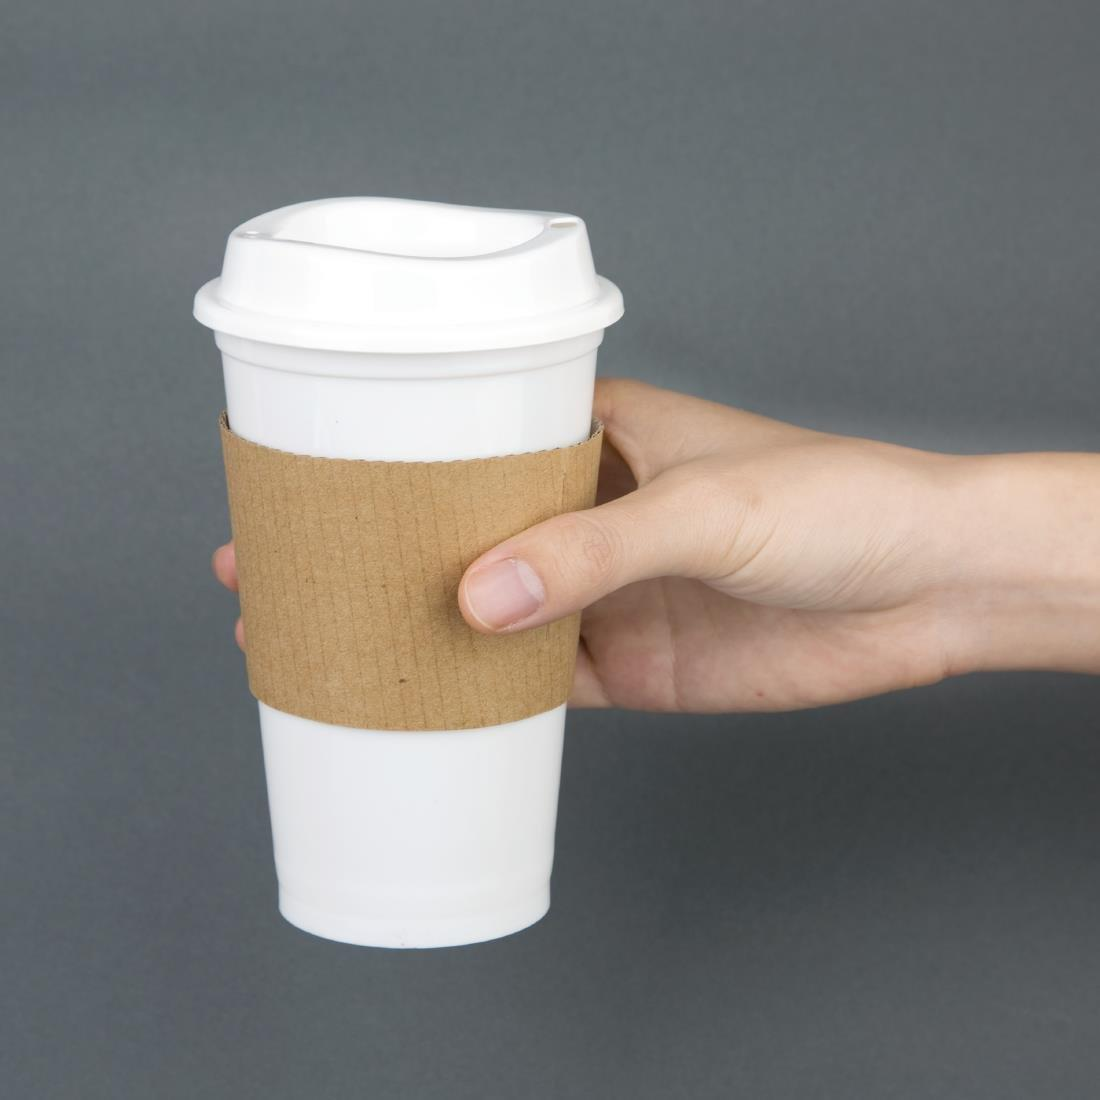 Olympia Polypropylene Reusable Coffee Cups 16oz (Pack of 25